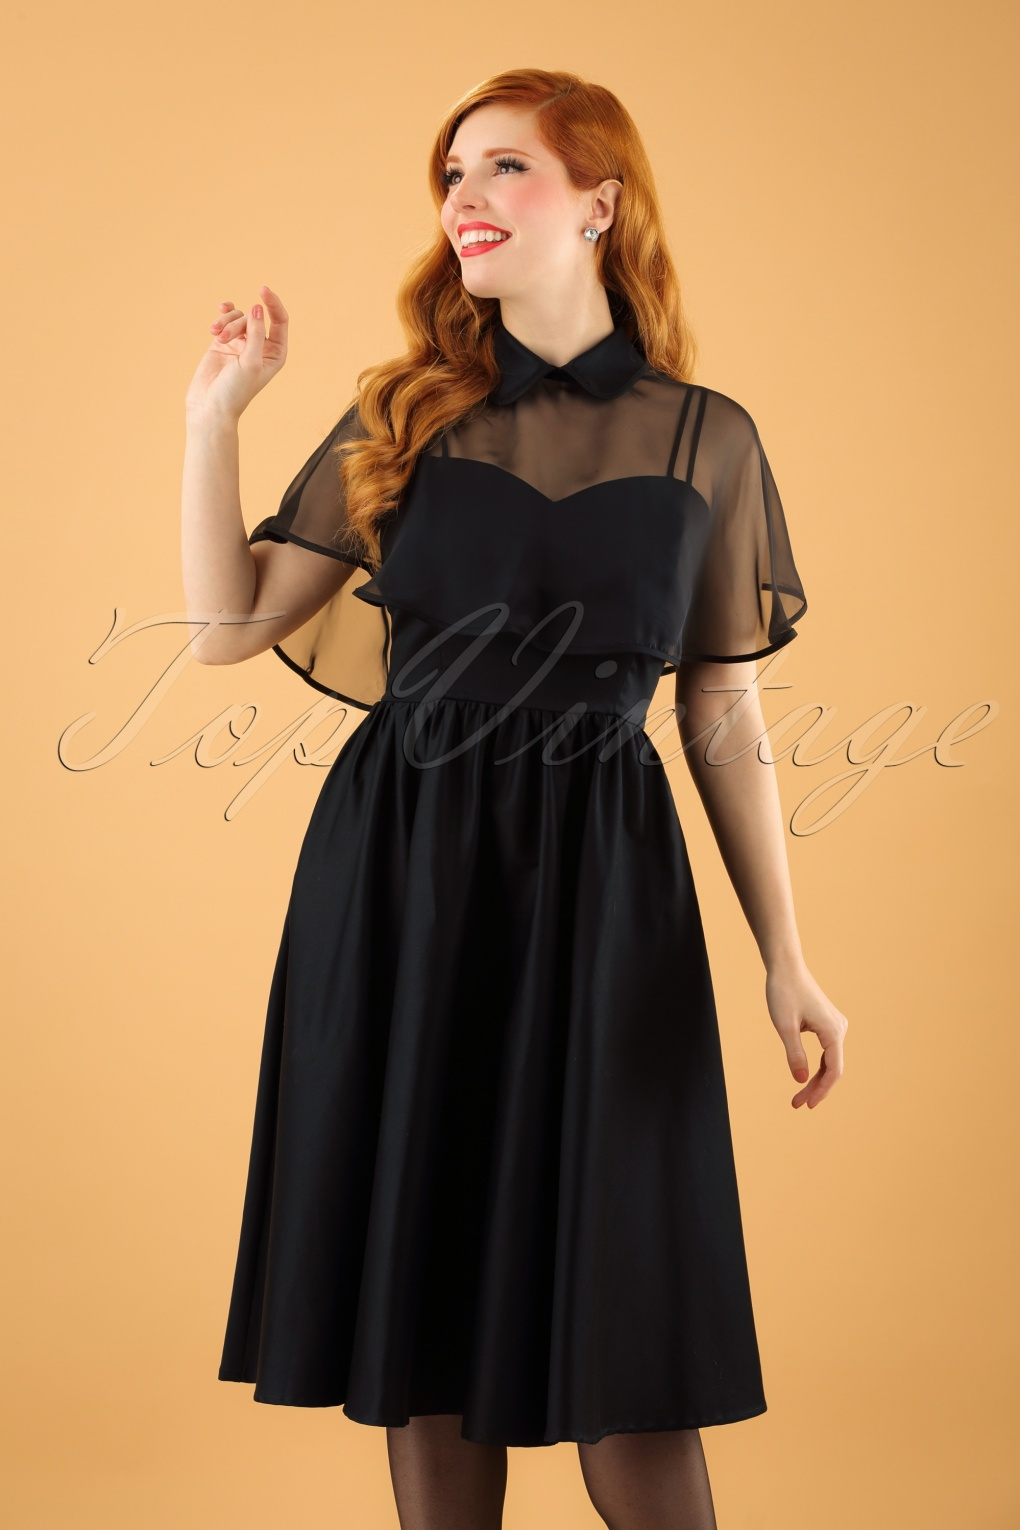 500 Vintage Style Dresses for Sale 40s Luna Swing Dress in Black £136.85 AT vintagedancer.com